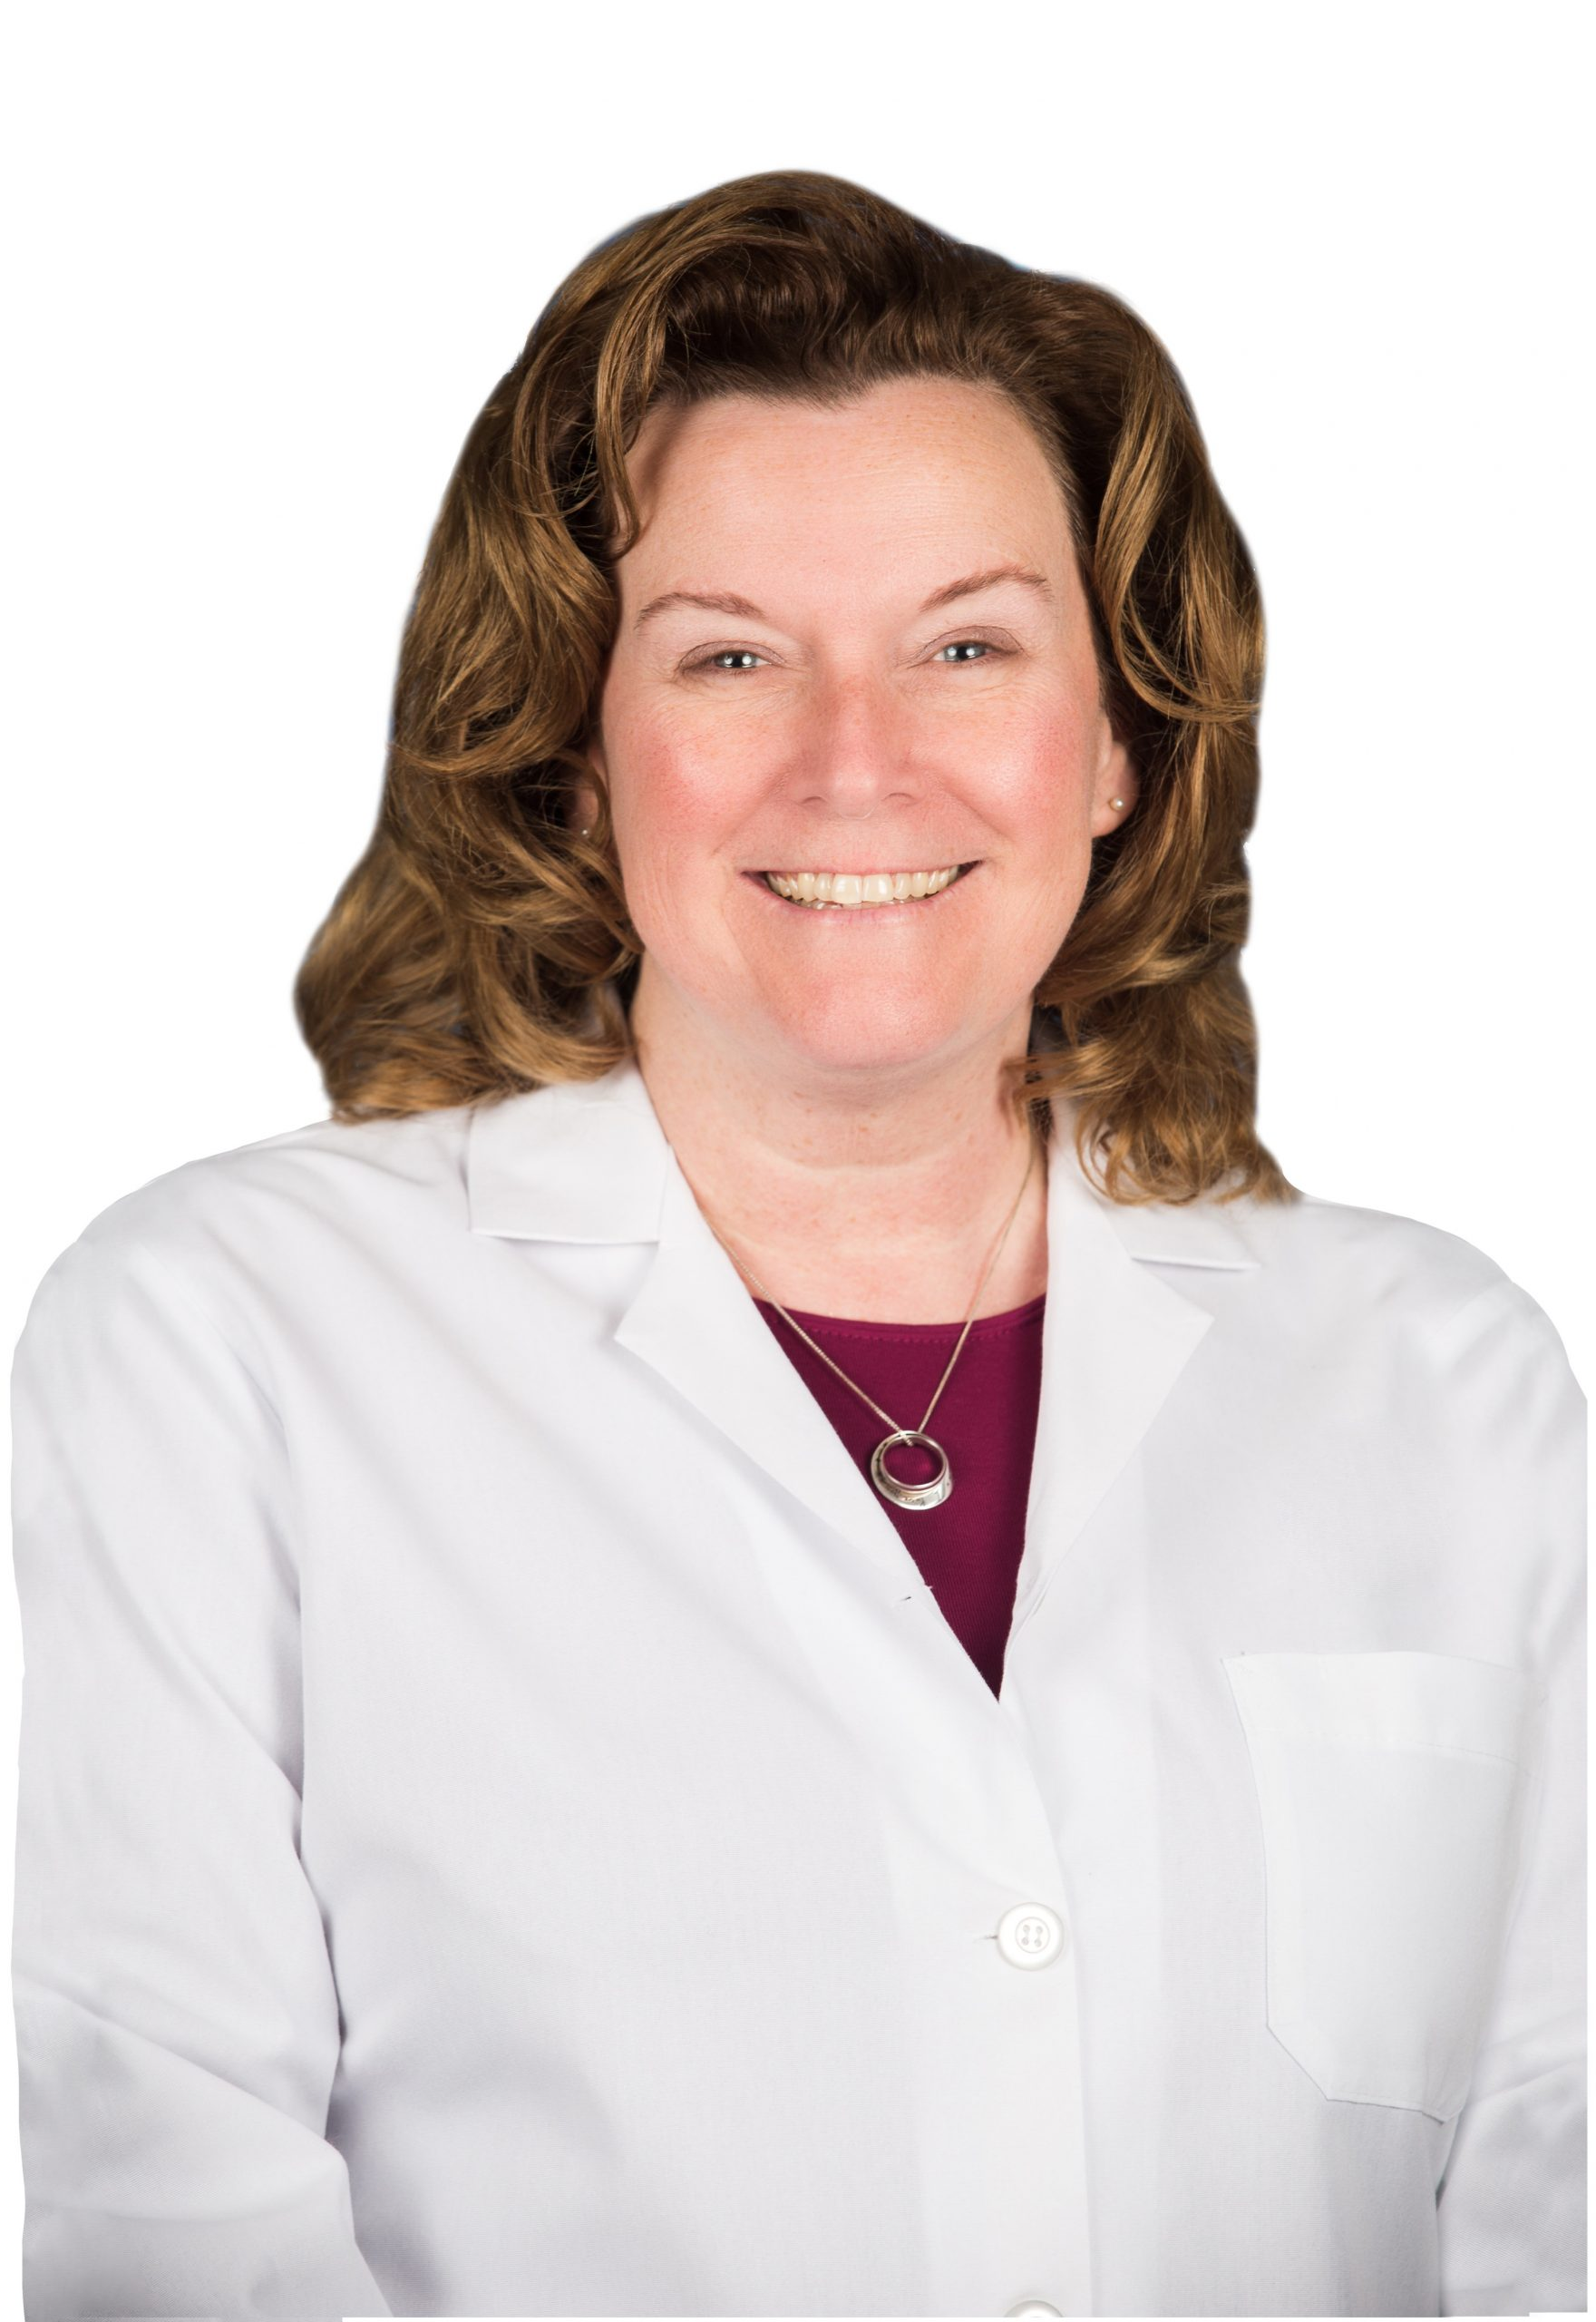 Susan Frommeyer, MD, FACOG